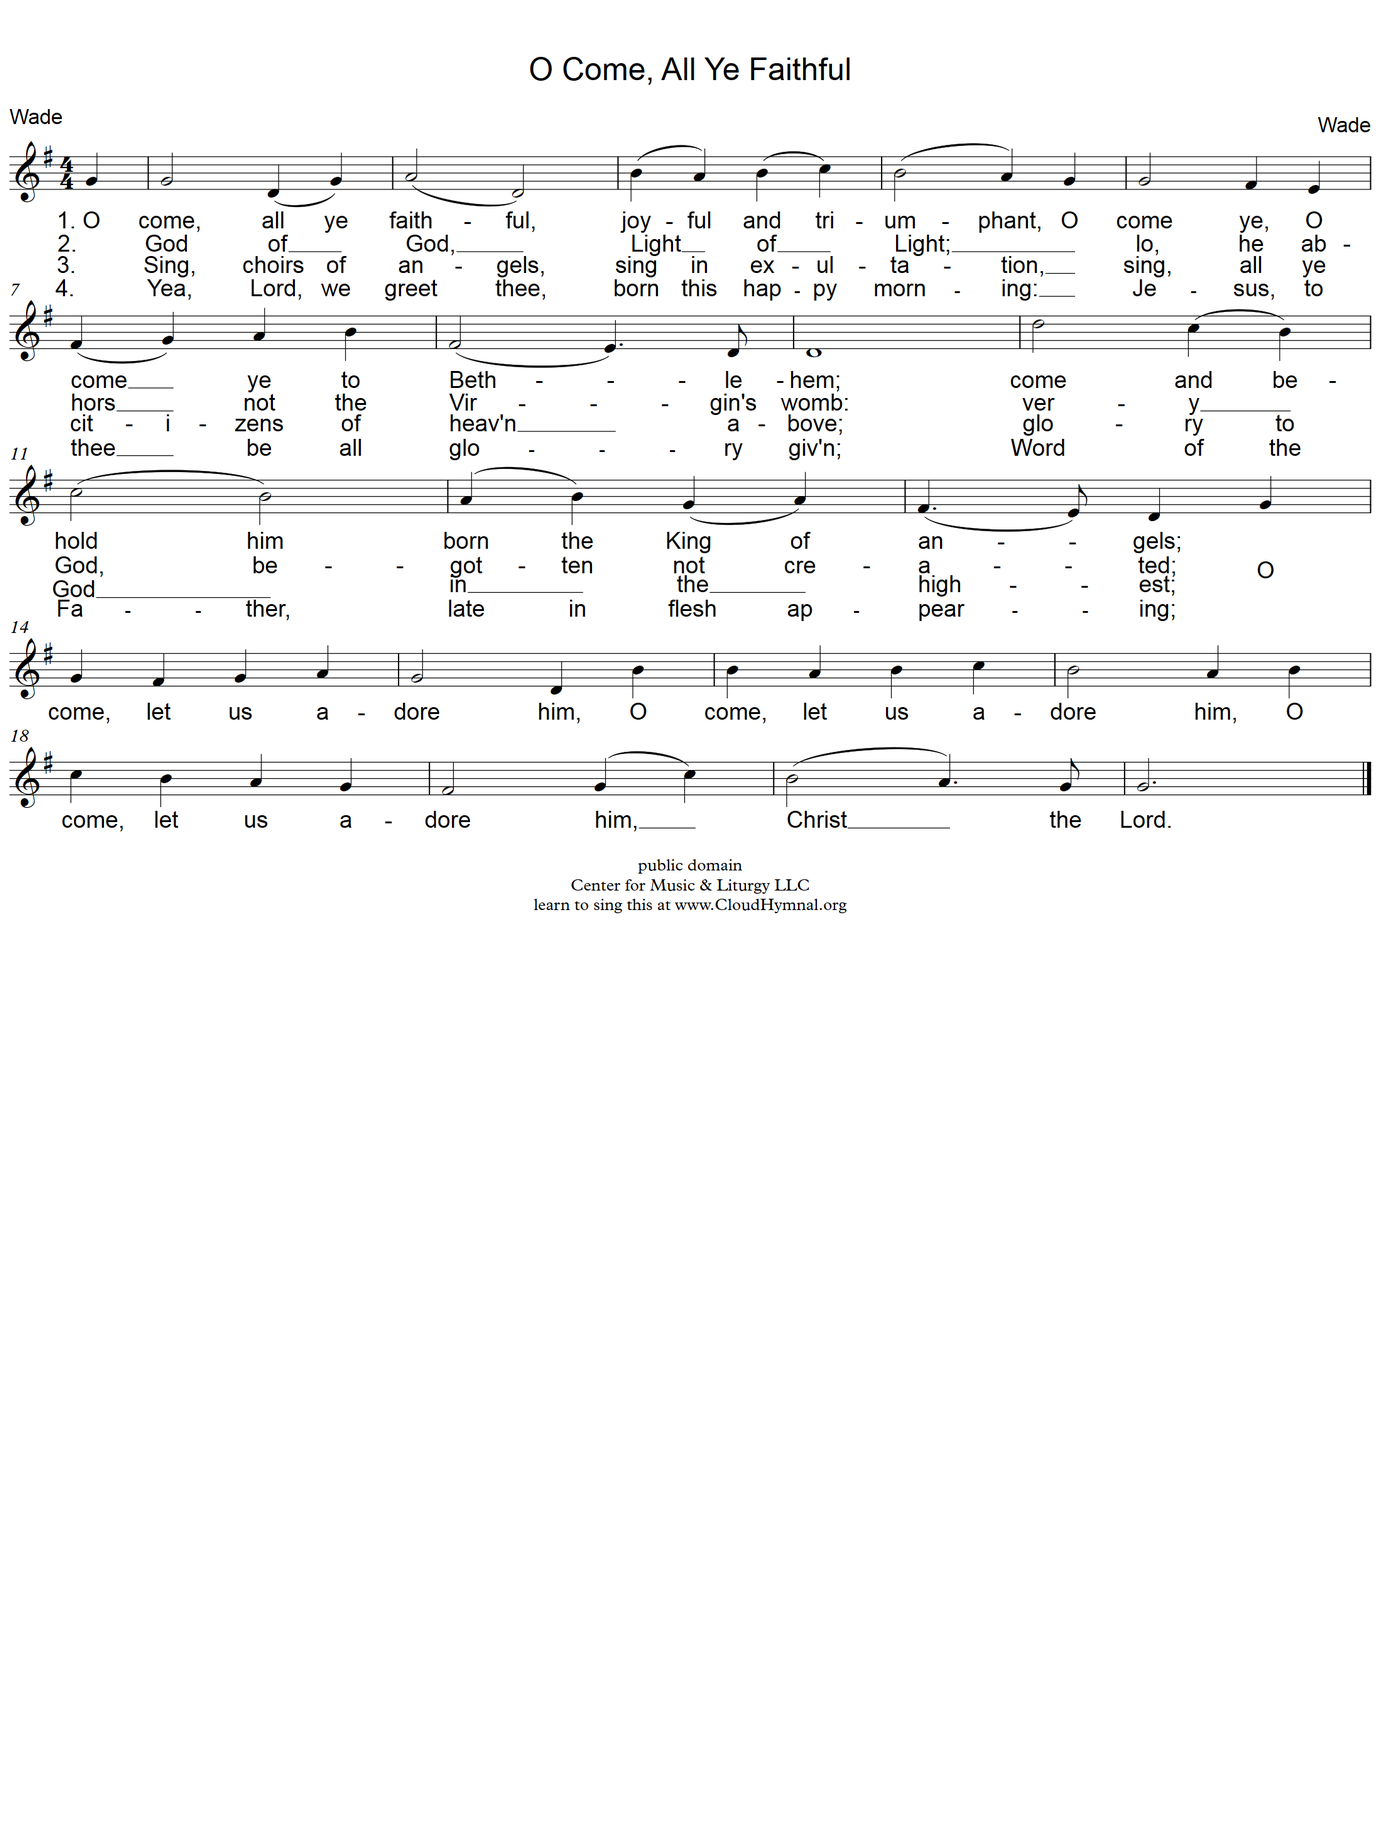 Cml library cloud hymnal 1 page read lyrics m4hsunfo